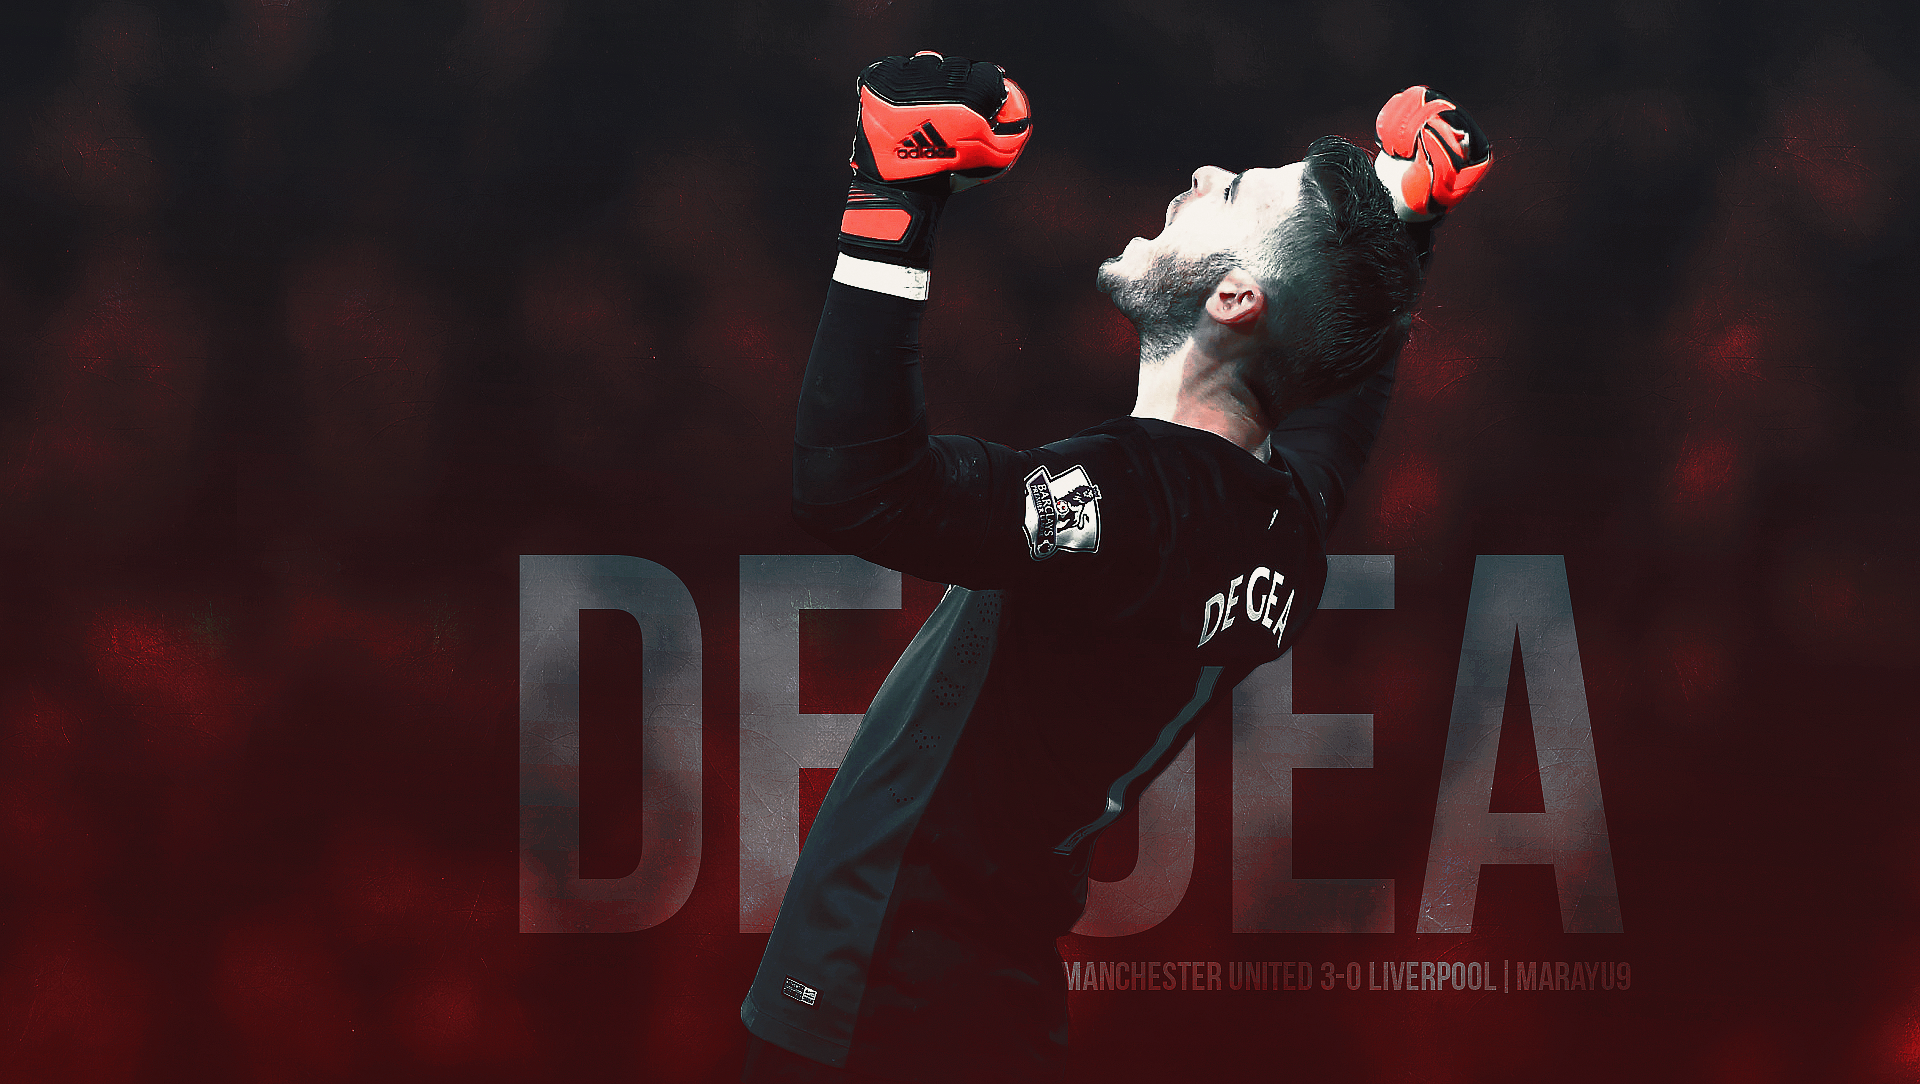 Get Good Looking Manchester United Wallpapers De Gea Wallpaper with David De Gea! Click on the pic on my G+ and then More/Download